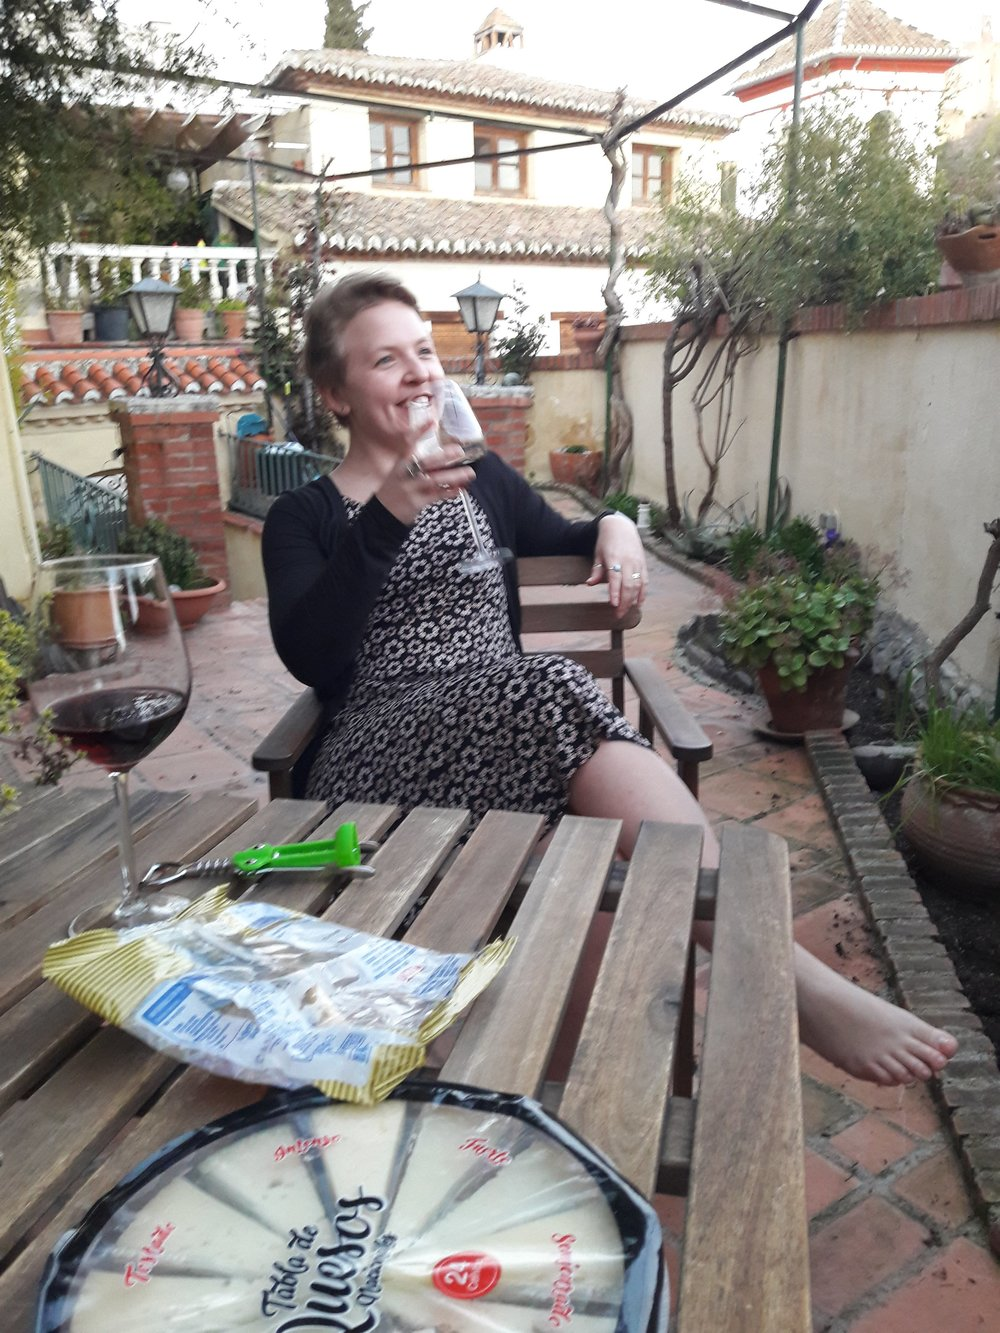 Even though I want my visitors to drink all the wine and eat all the cheese while they're here in Spain, it gives an unrealistic impression of my 'normal life.'